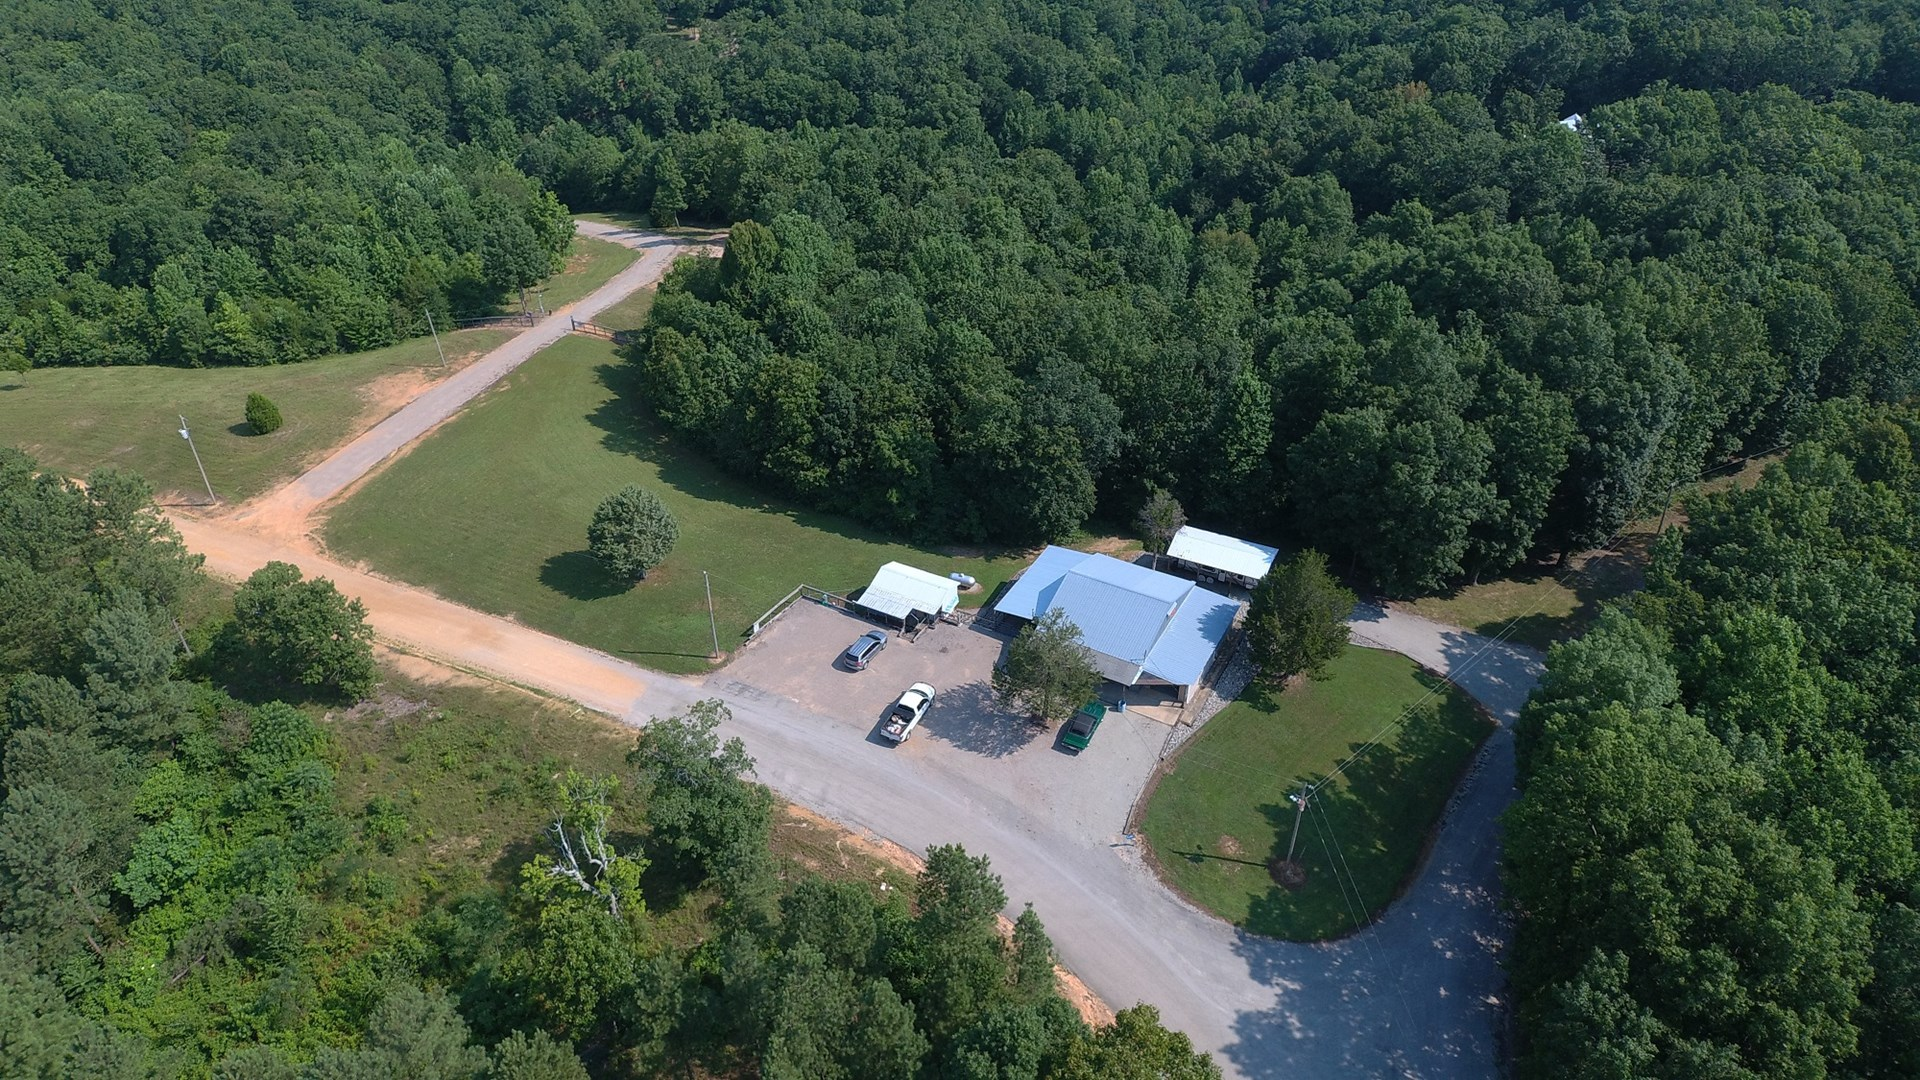 UNRESTRICTED LAND WITH UTILITY BUILDING FOR SALE IN TN